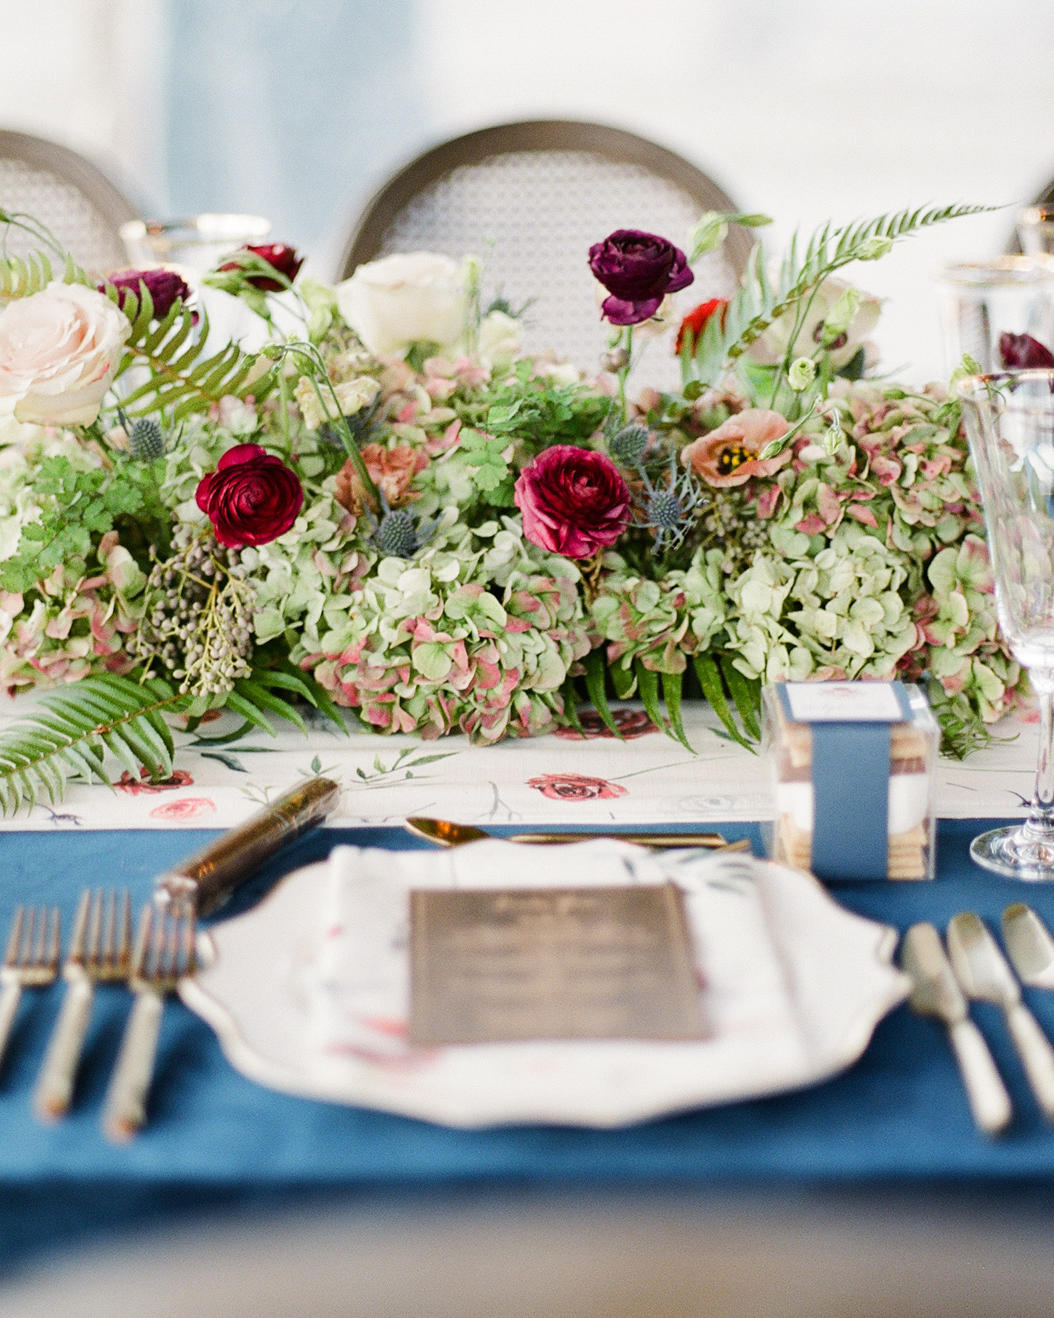 maidenhair ferns, plumosa, flat ferns, ranunculous, privet berry, antique hydrangea, and peonies centerpieces